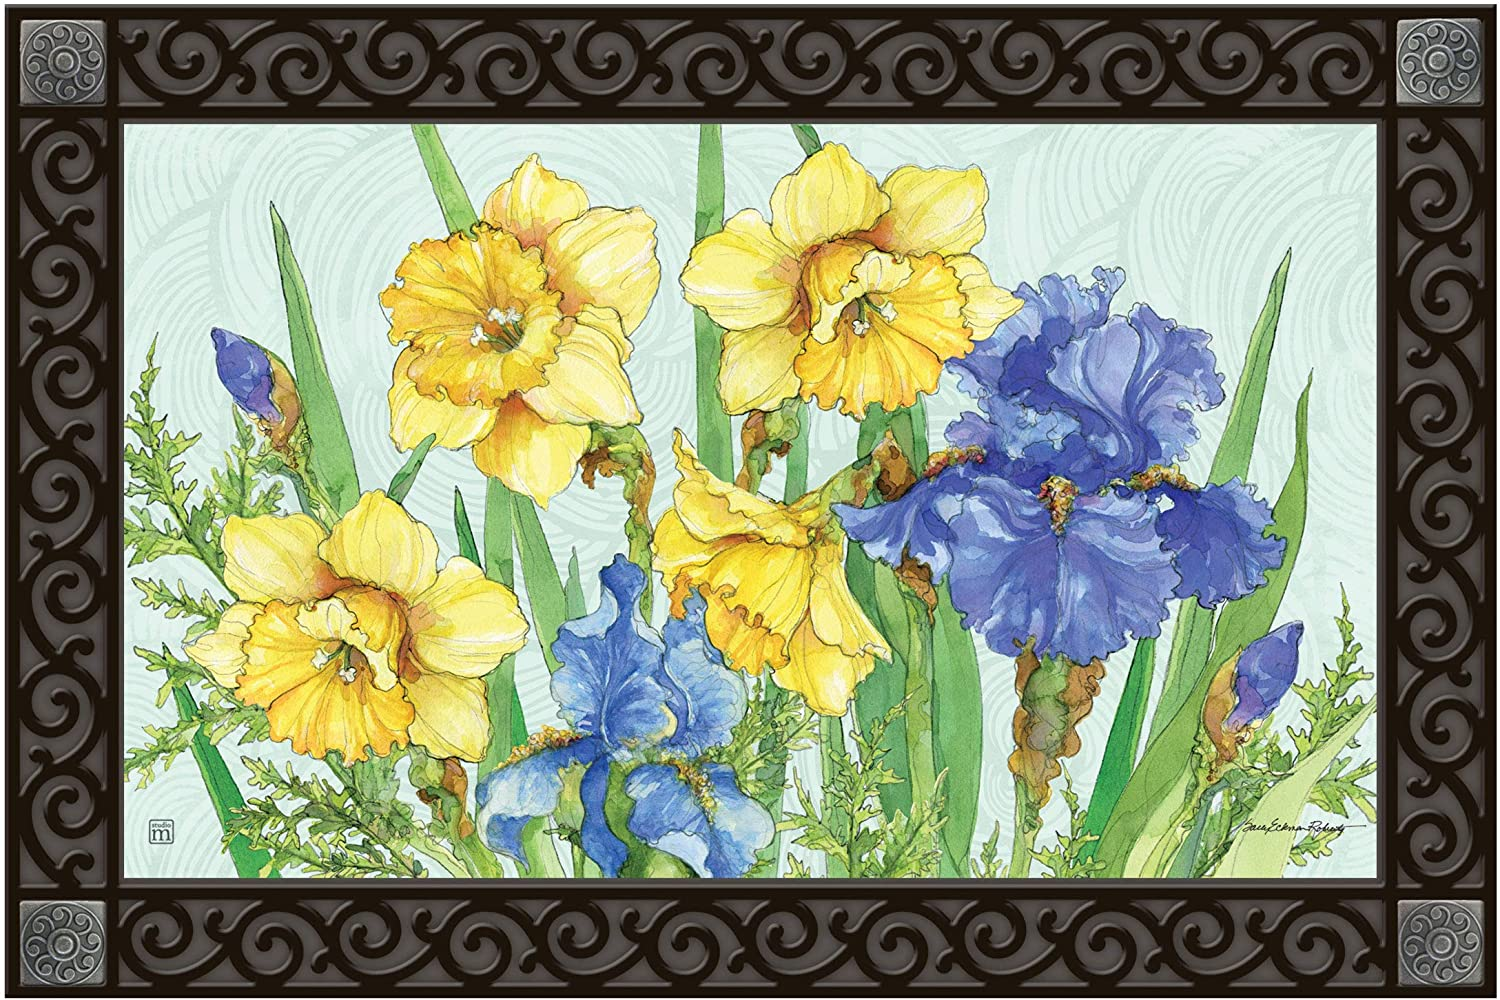 Studio M MatMates Daffodils and Irises Decorative Floor Mat Indoor or Outdoor Doormat with Eco-Friendly Recycled Rubber Backing, 18 x 30 Inches